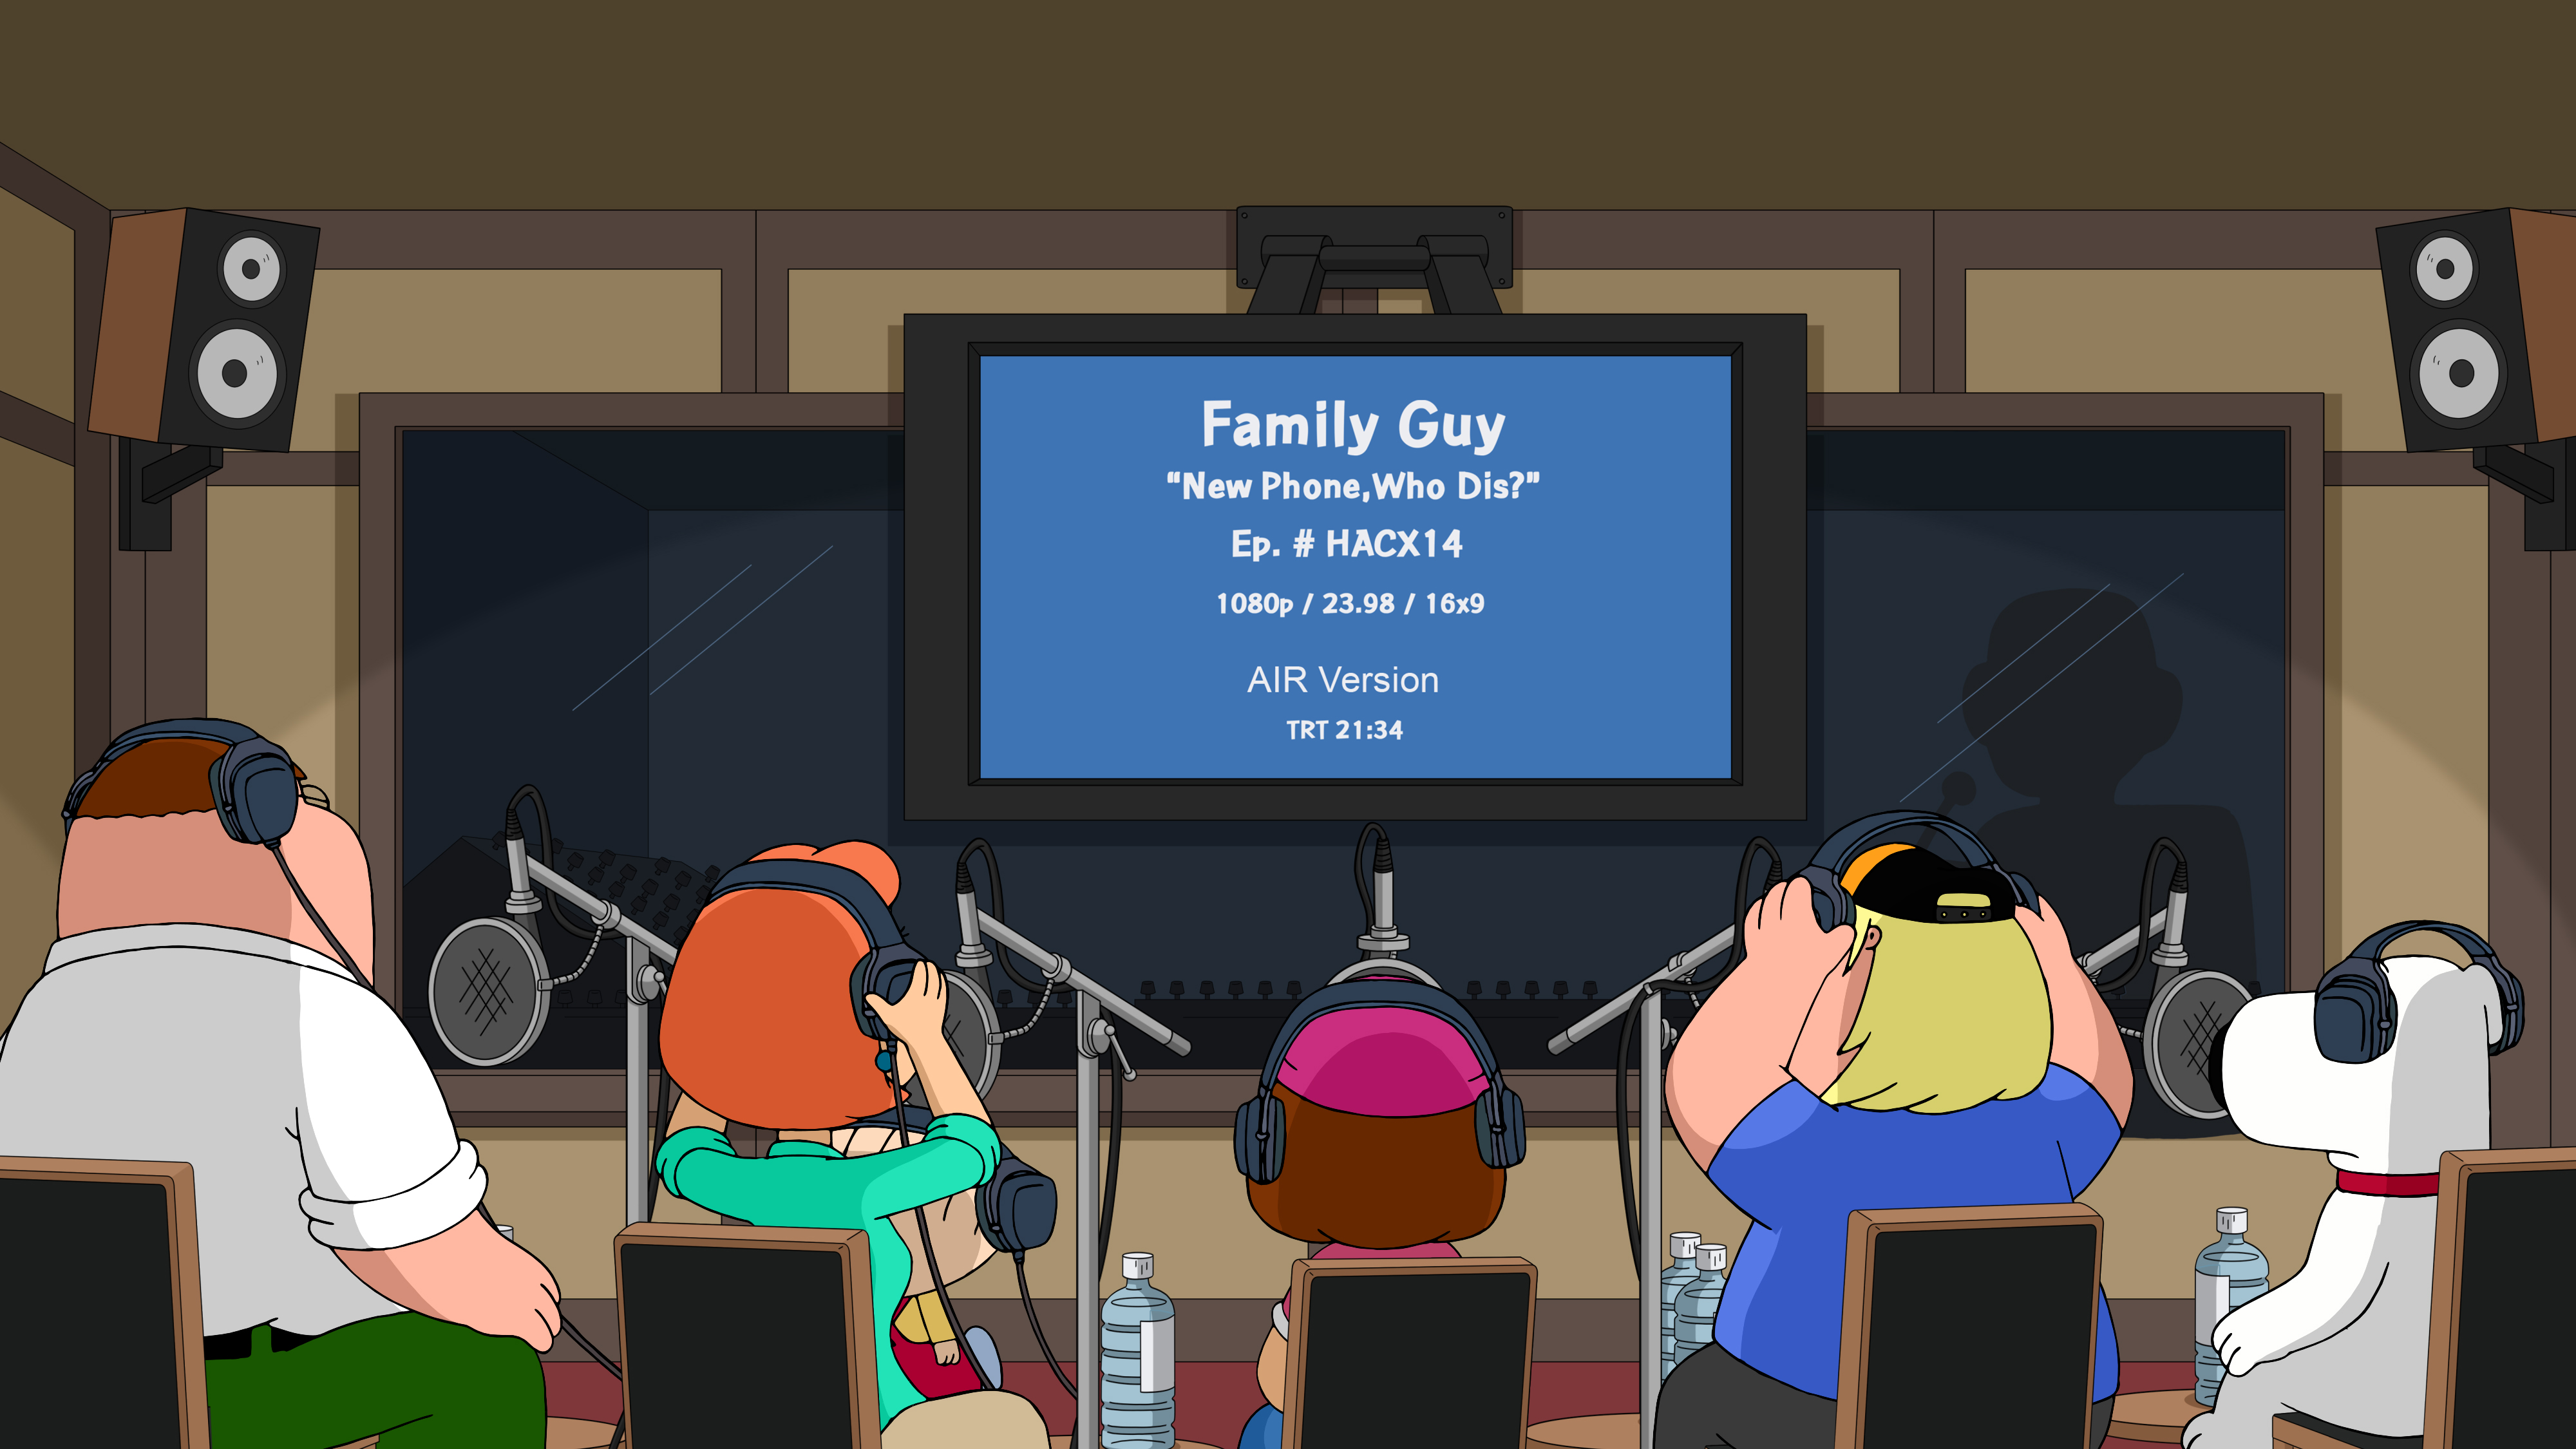 You Can T Handle The Booth Family Guy Fanon Wiki Fandom Jump to navigation jump to search. family guy fanon wiki